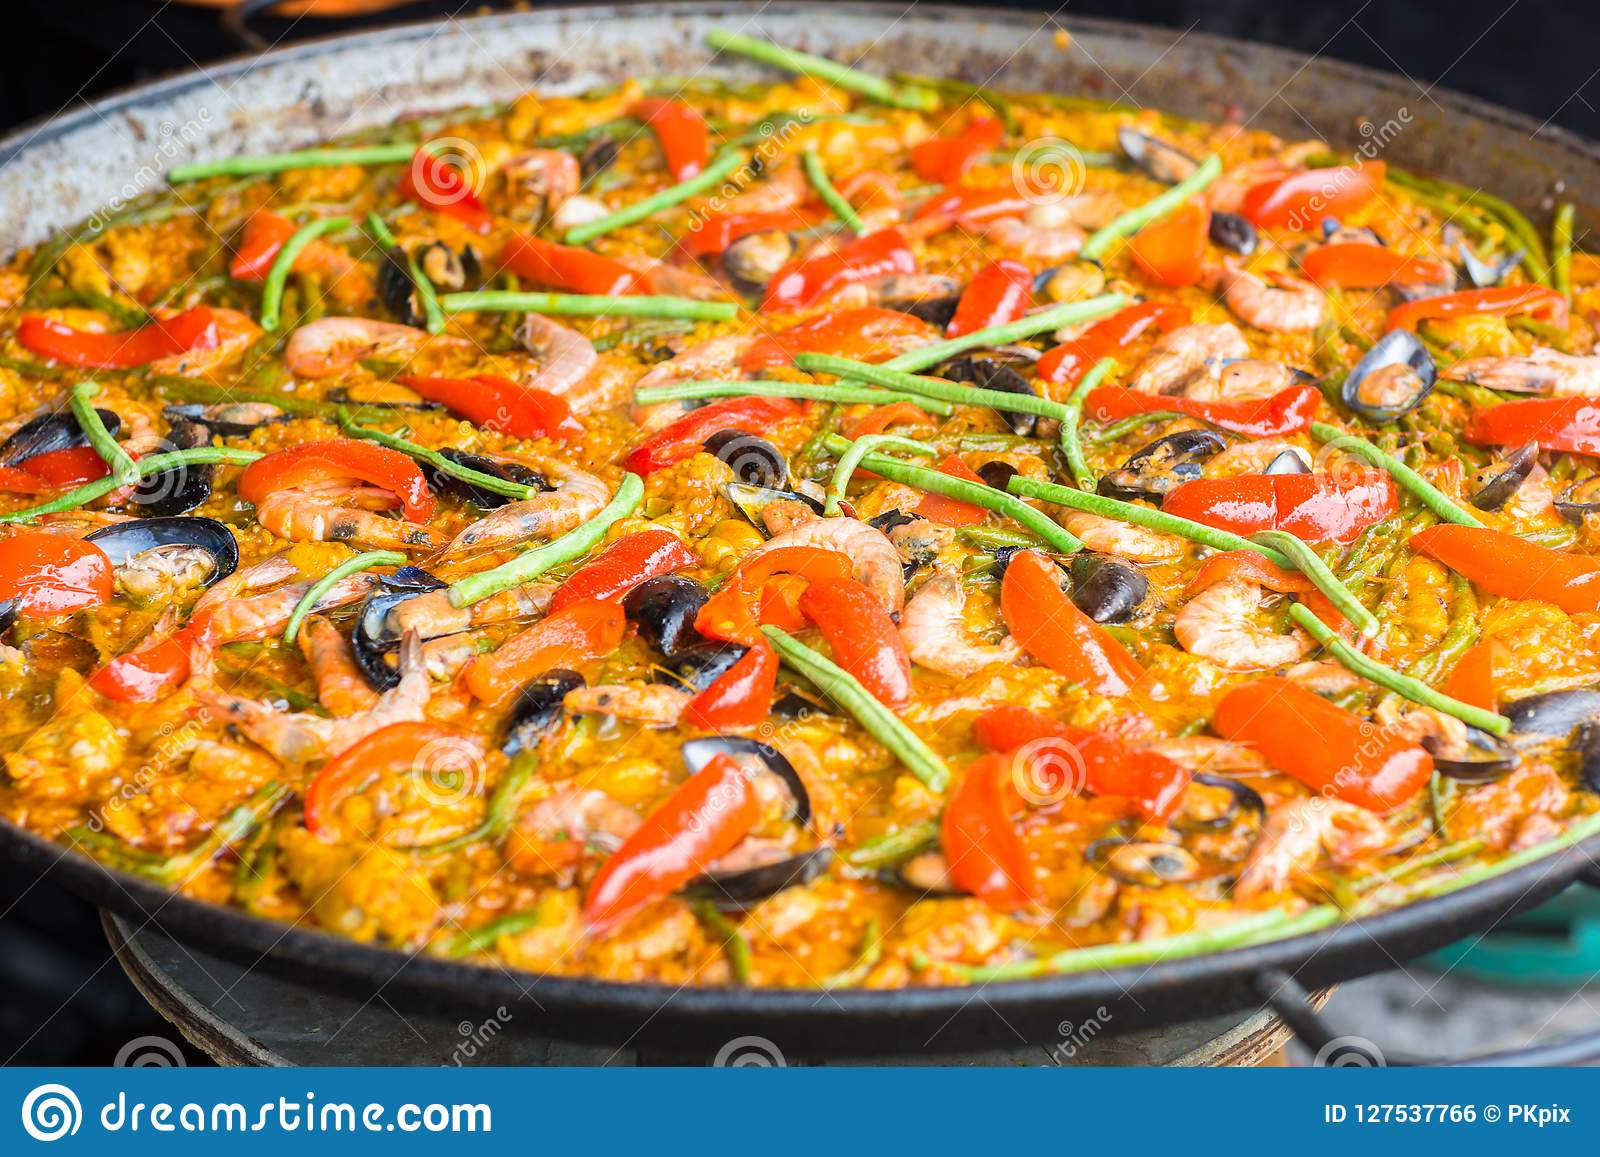 Closeup of Seafood Paella in a large frying pan.